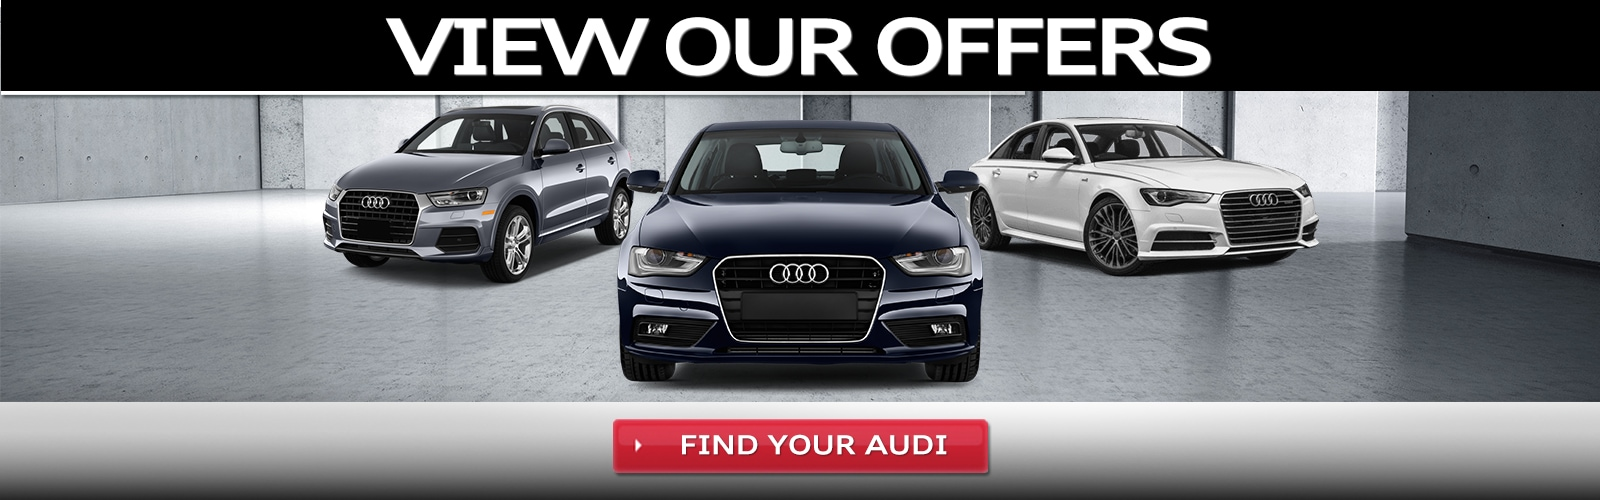 Welcome to Audi Bethesda  Chevy Chase Audi Dealership